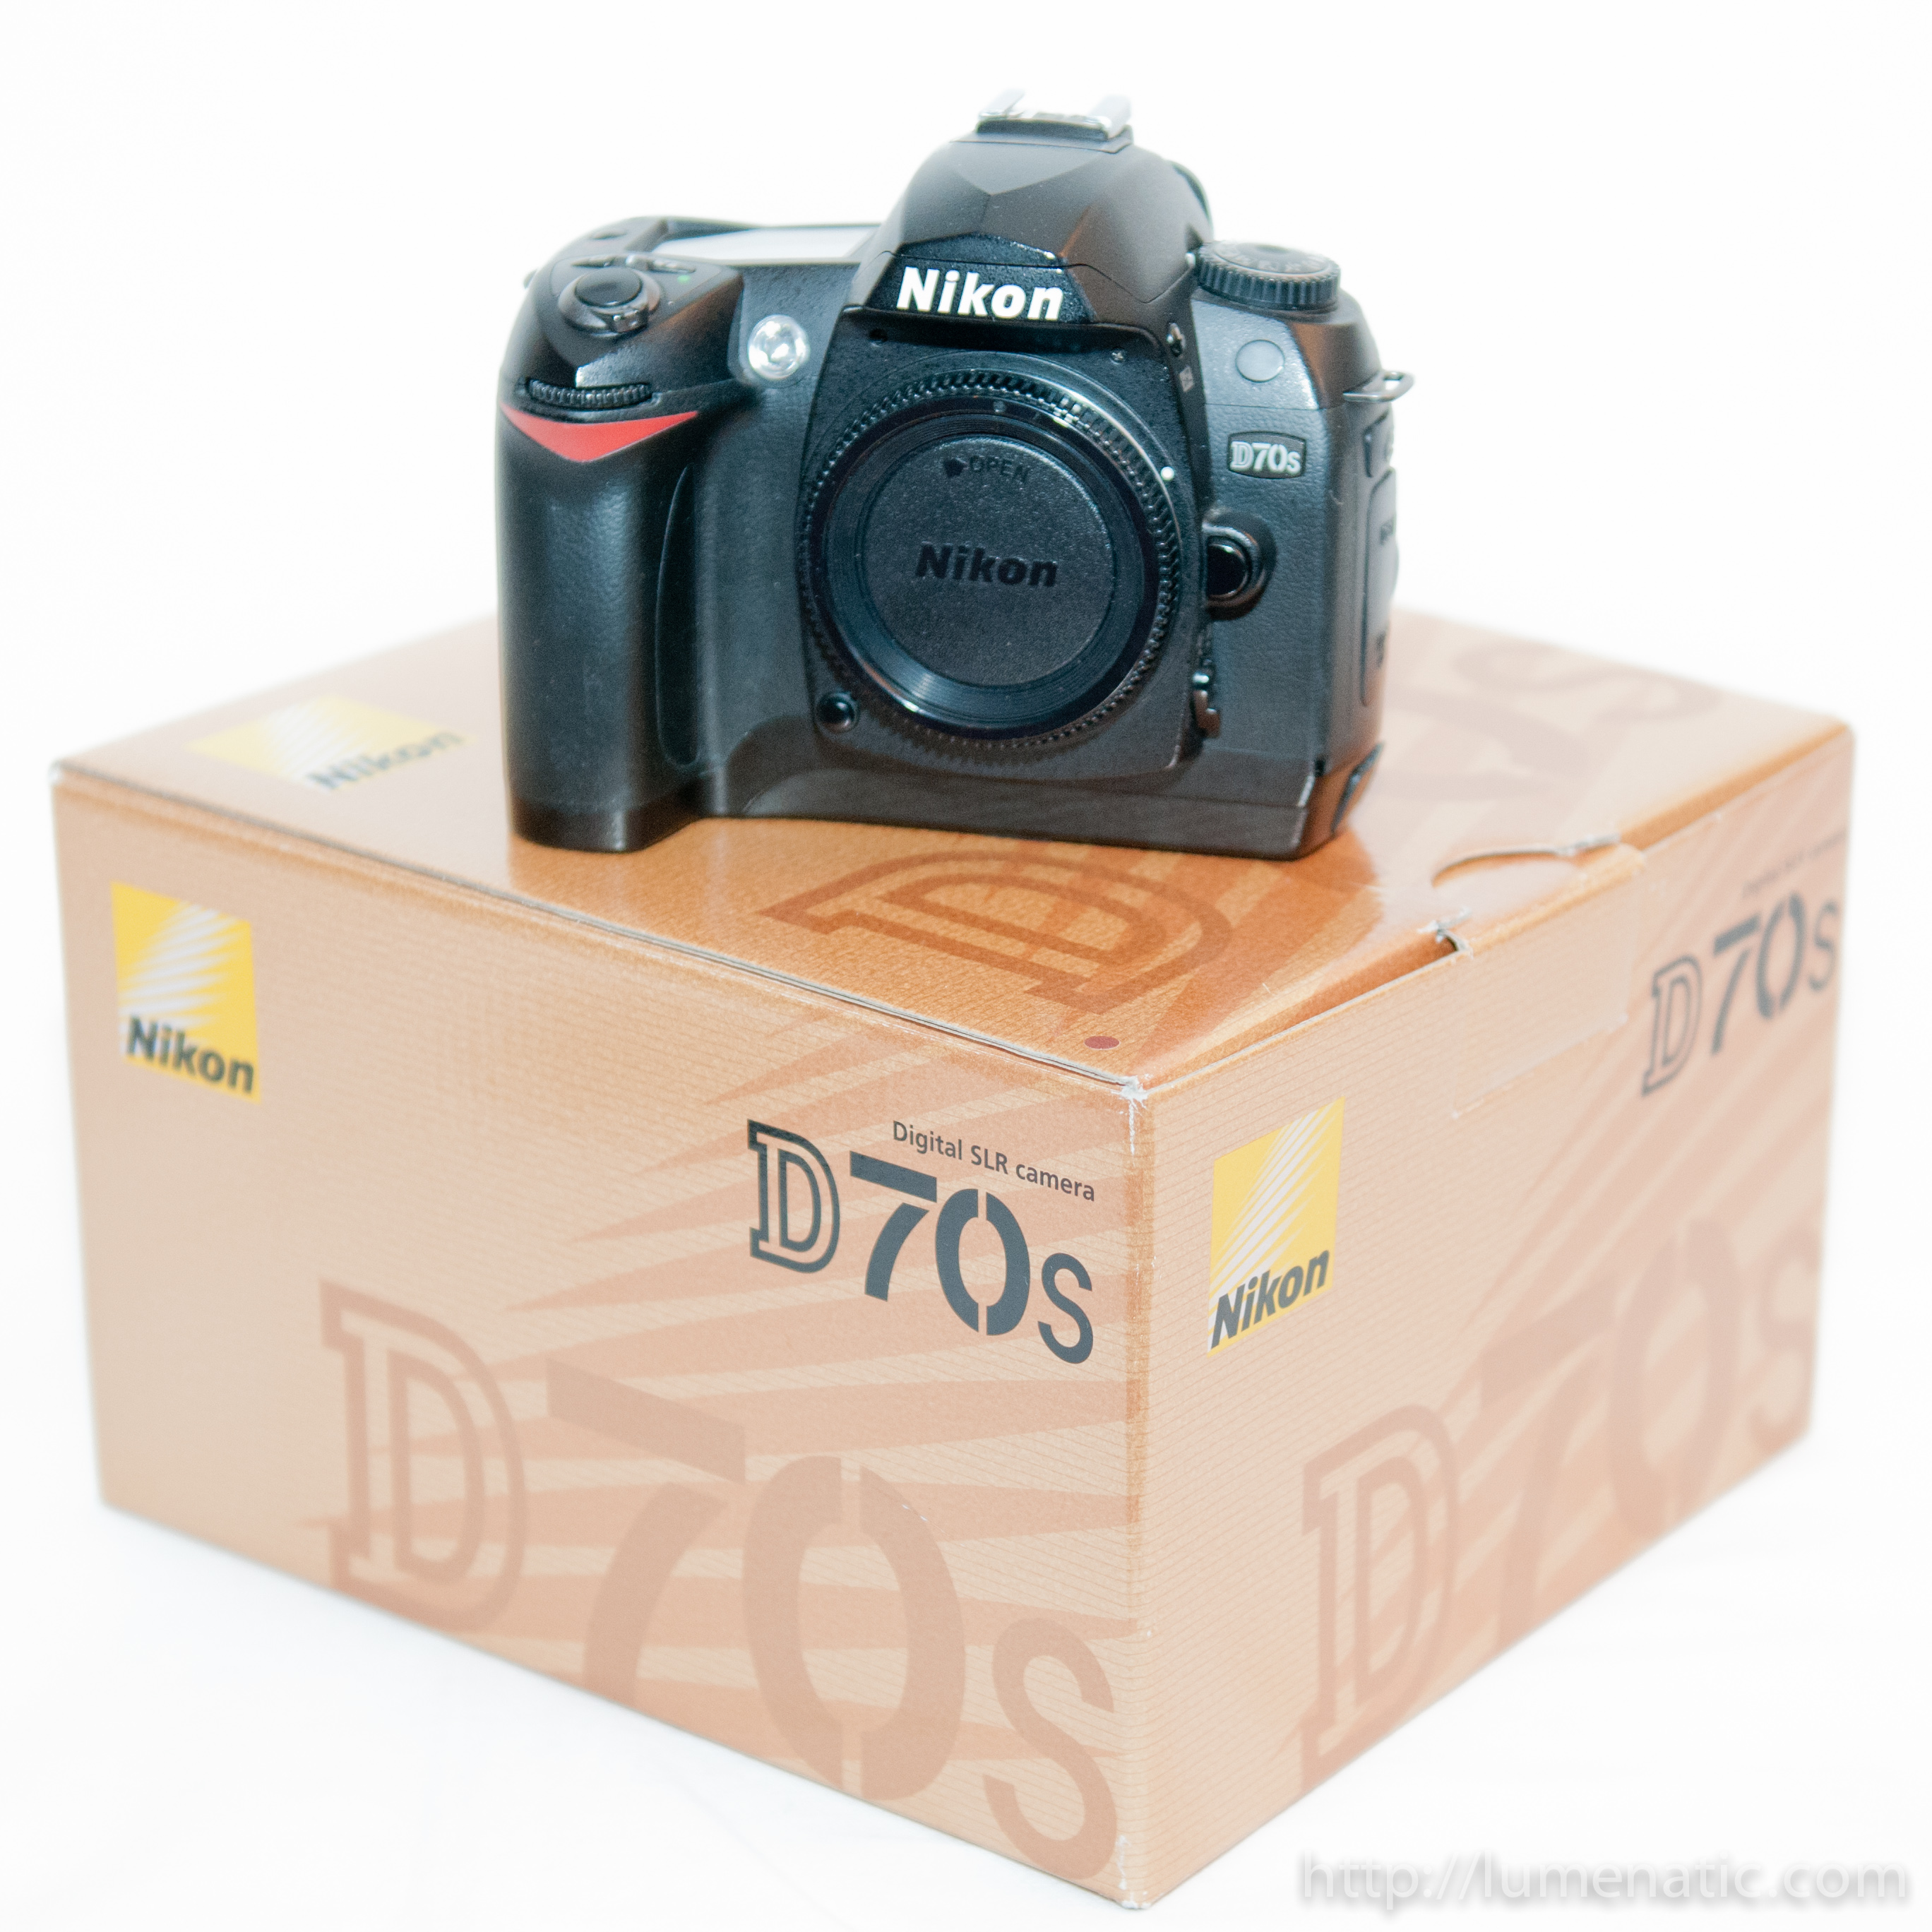 D70s for sale *Update – S O L D*